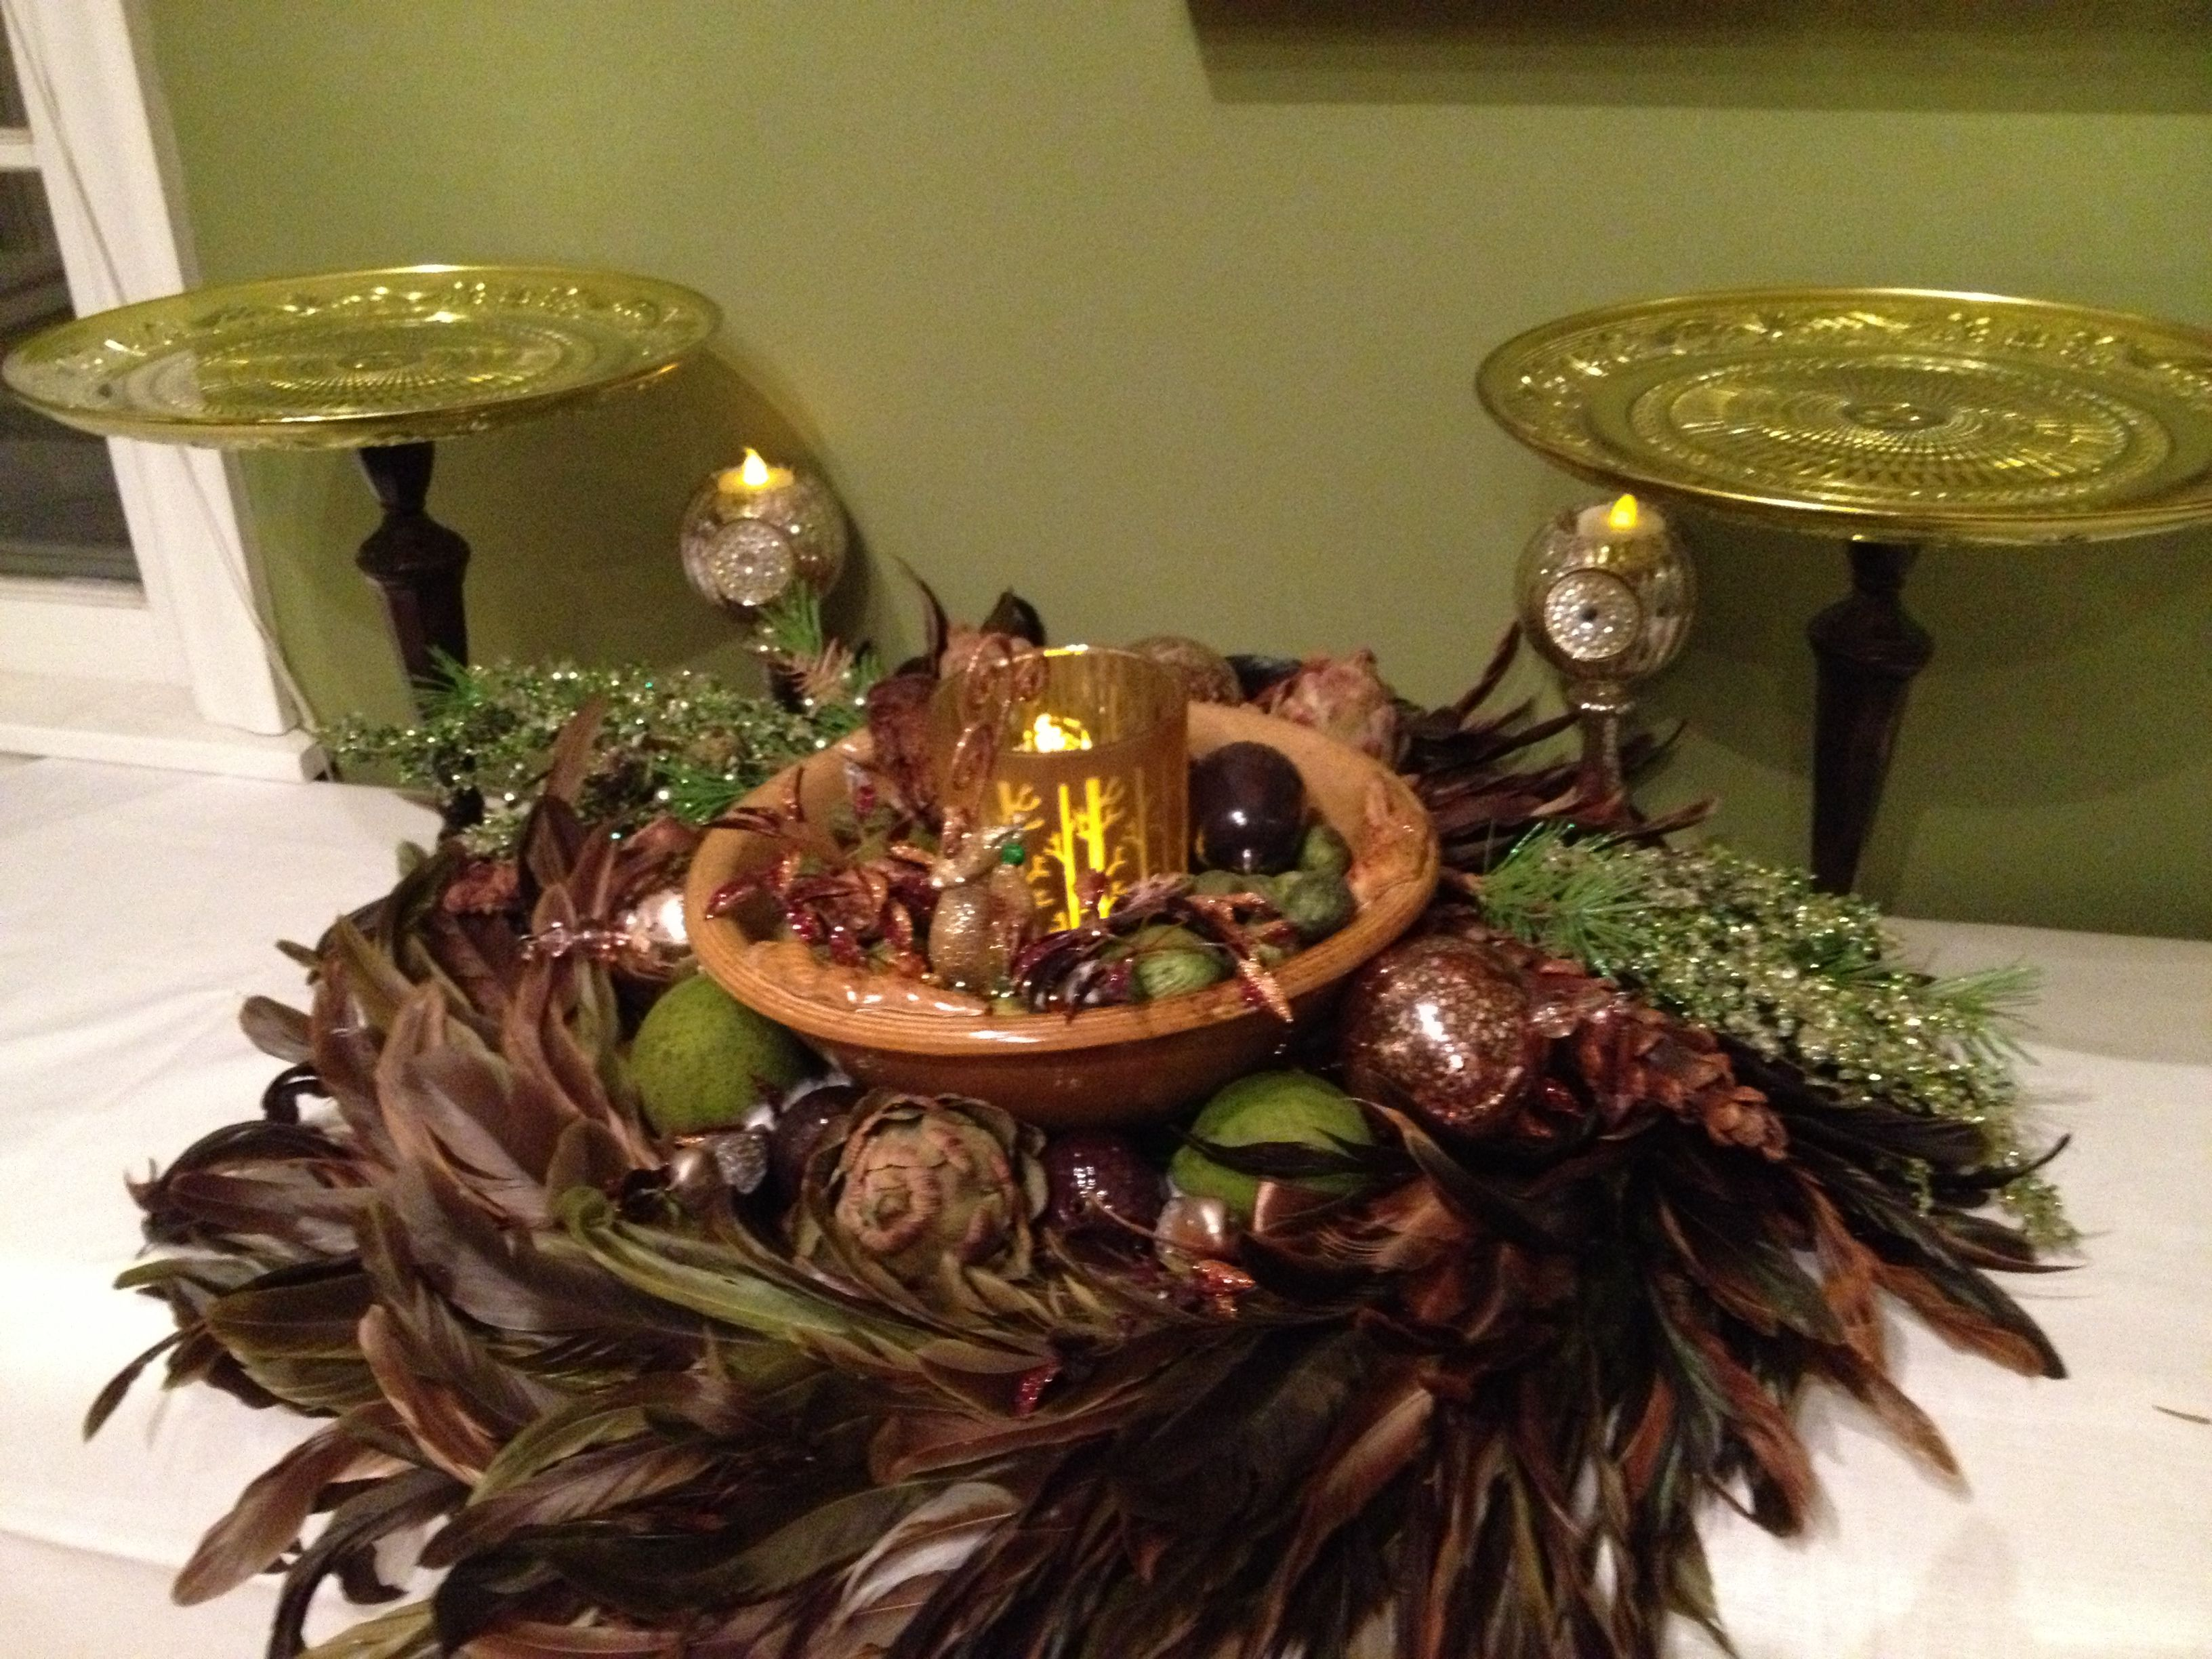 Here is feather display and two cakestands i made from plates and